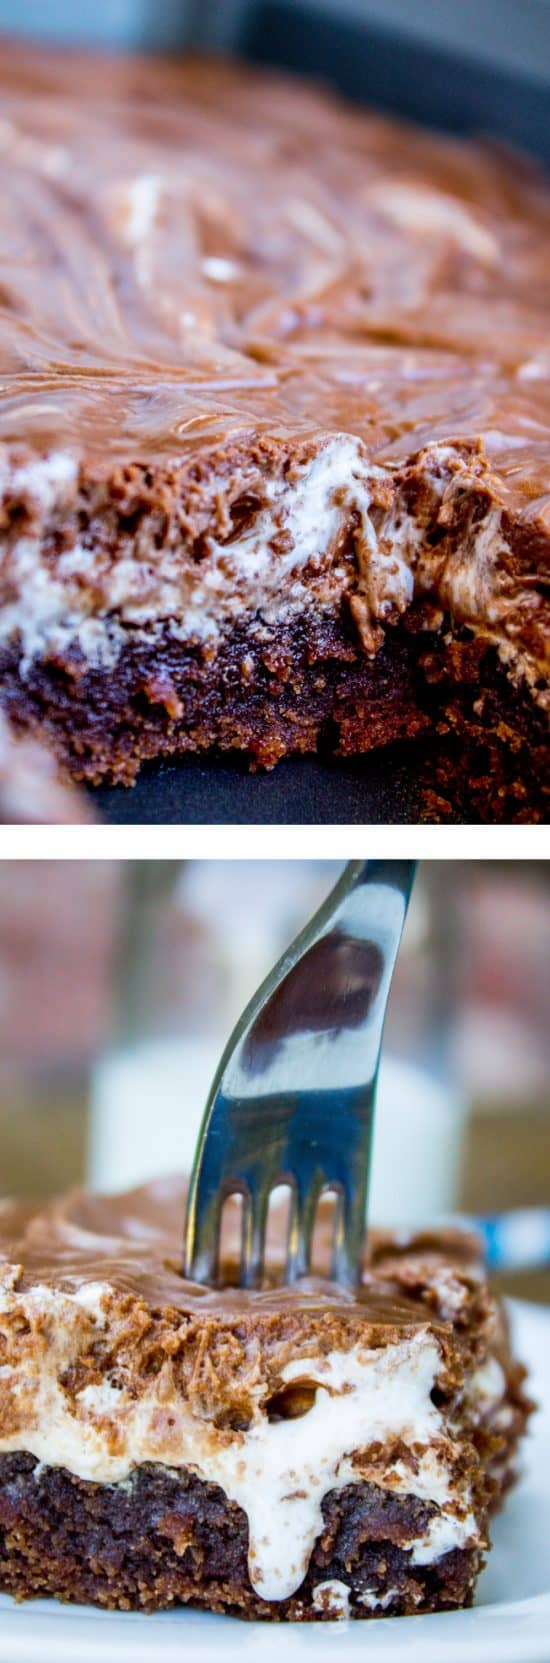 Mississippi Mud Cake from The Food Charlatan